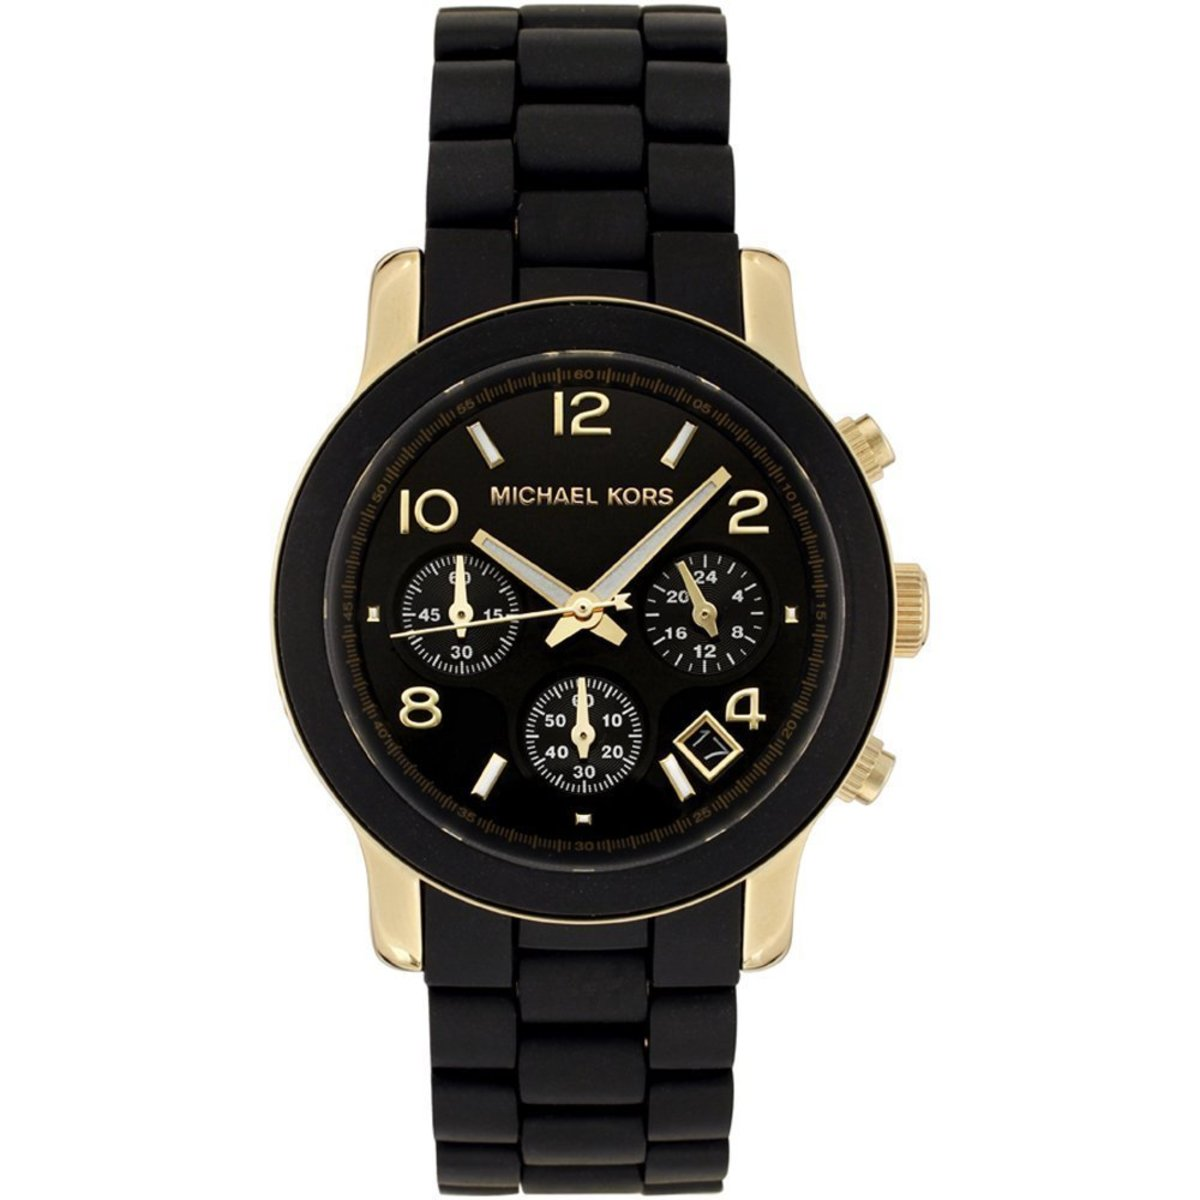 Michael Kors Quartz, Black Dial with Black Goldtone Bracelet watch.